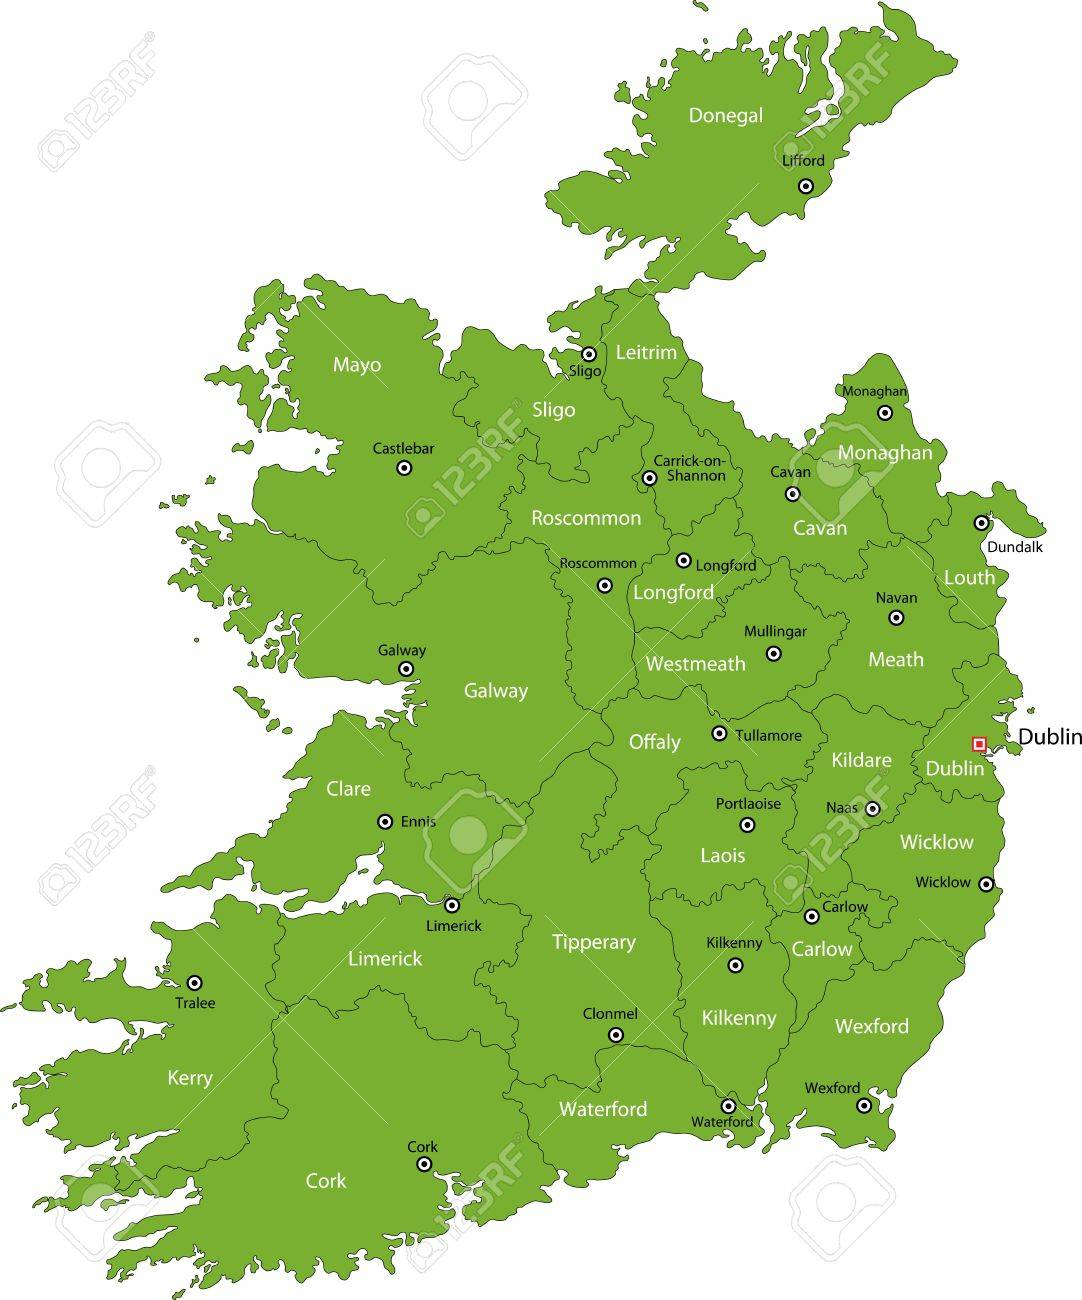 Map Of Ireland Major Cities.Republic Of Ireland Map With Regions And Main Cities Royalty Free